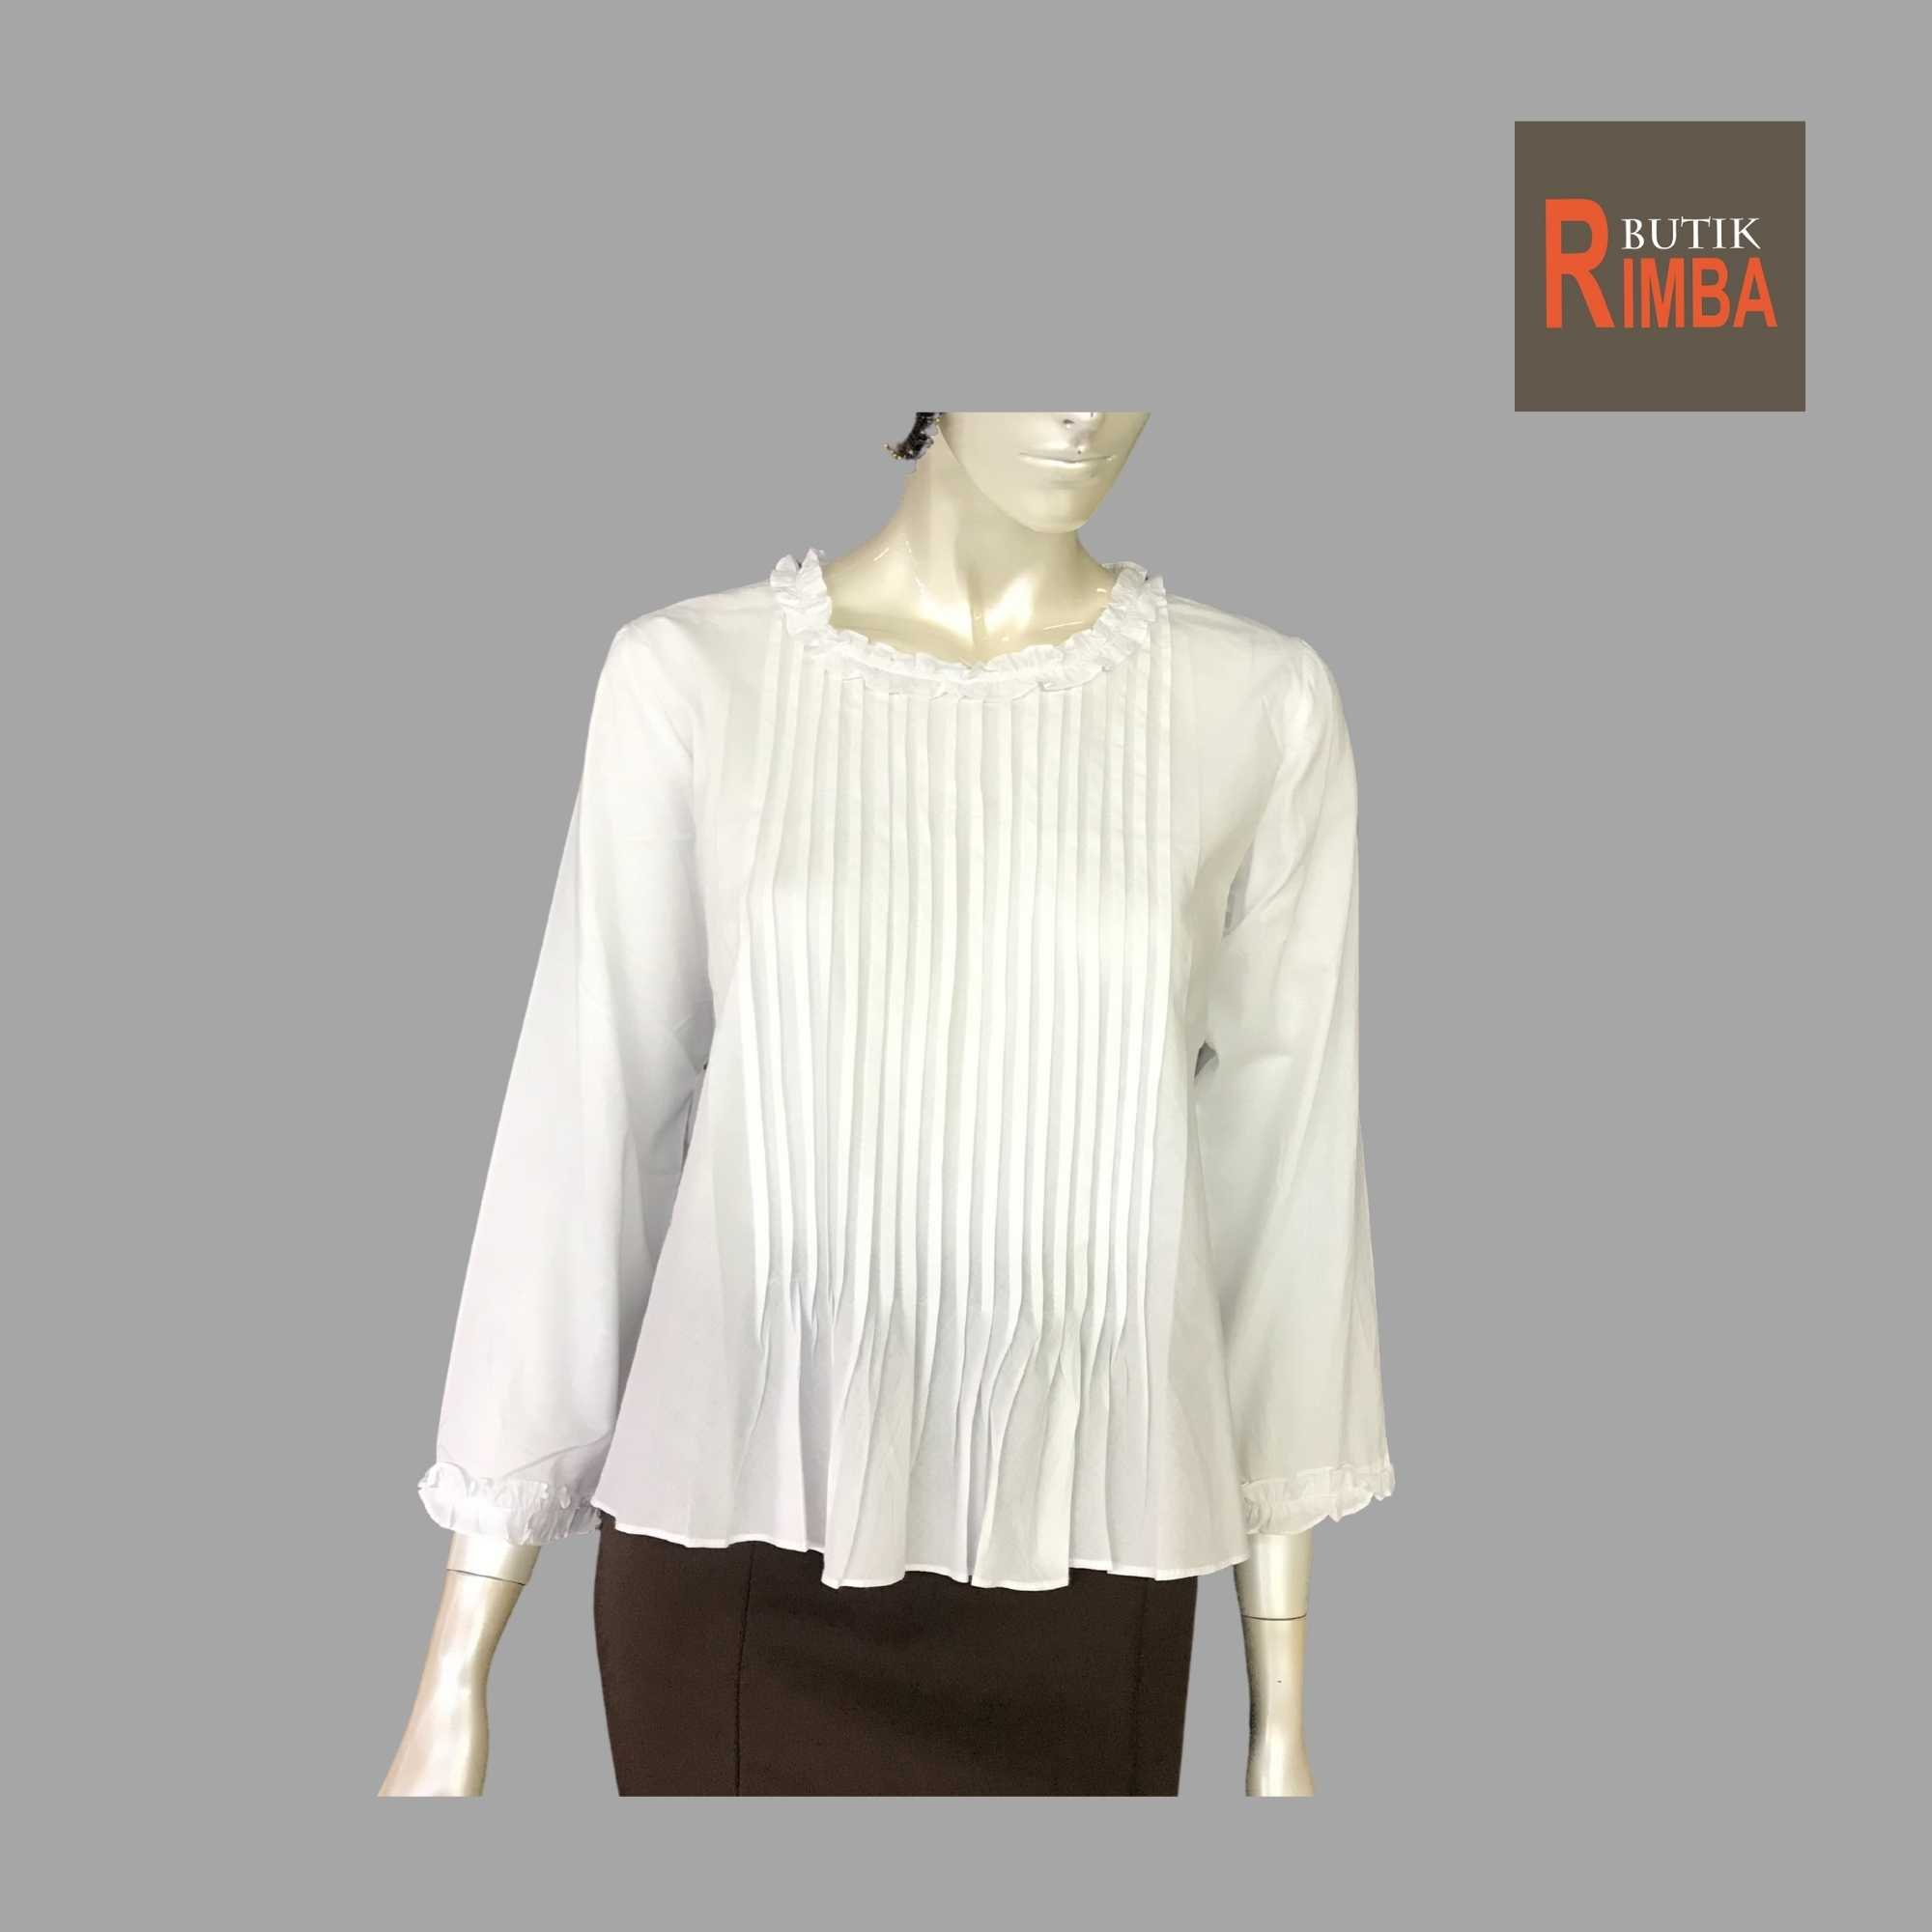 WOMEN CASUAL AND COMFORTABLE WHITE BLOUSE COTTON FREE SIZE PATTERN 09